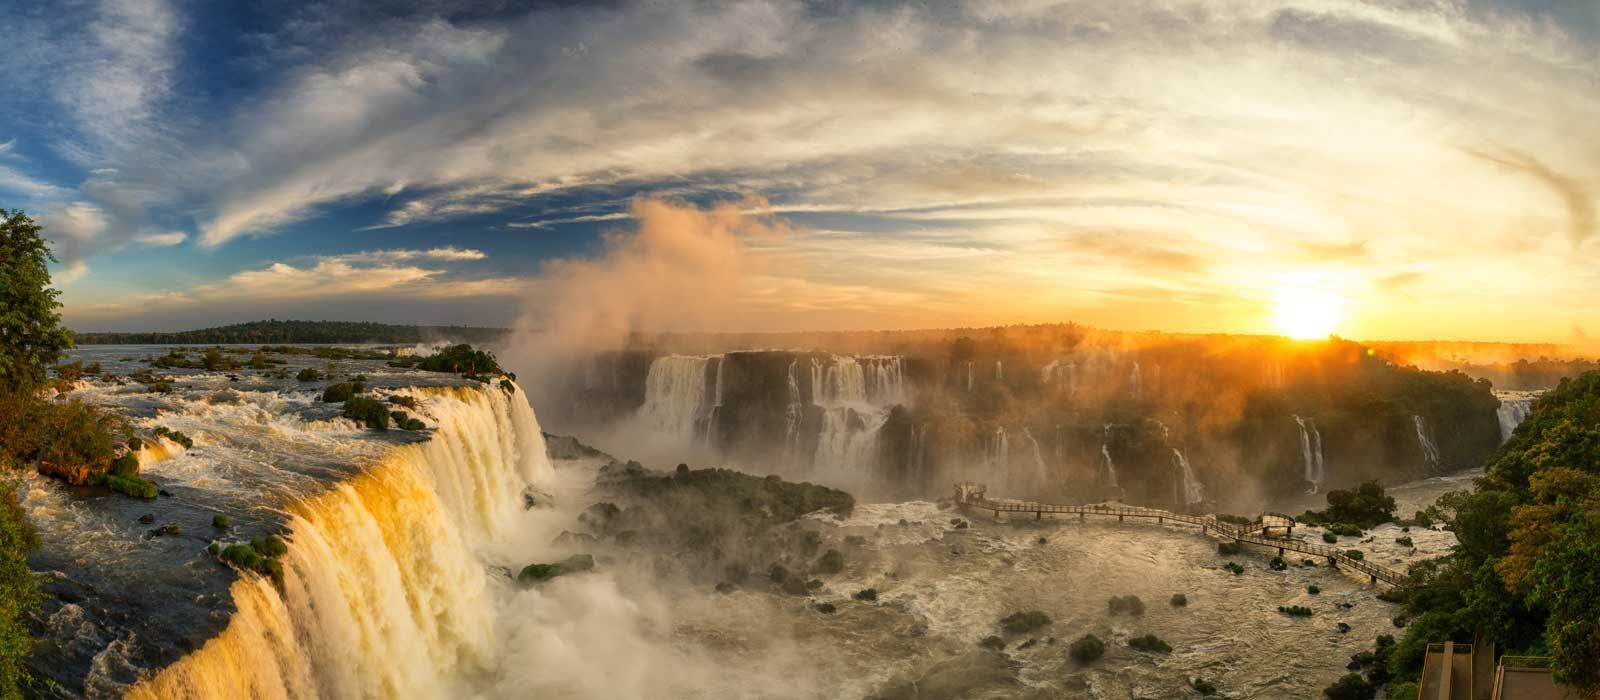 Argentina: Waterfalls, Whales and Gauchos Tour Trip 2